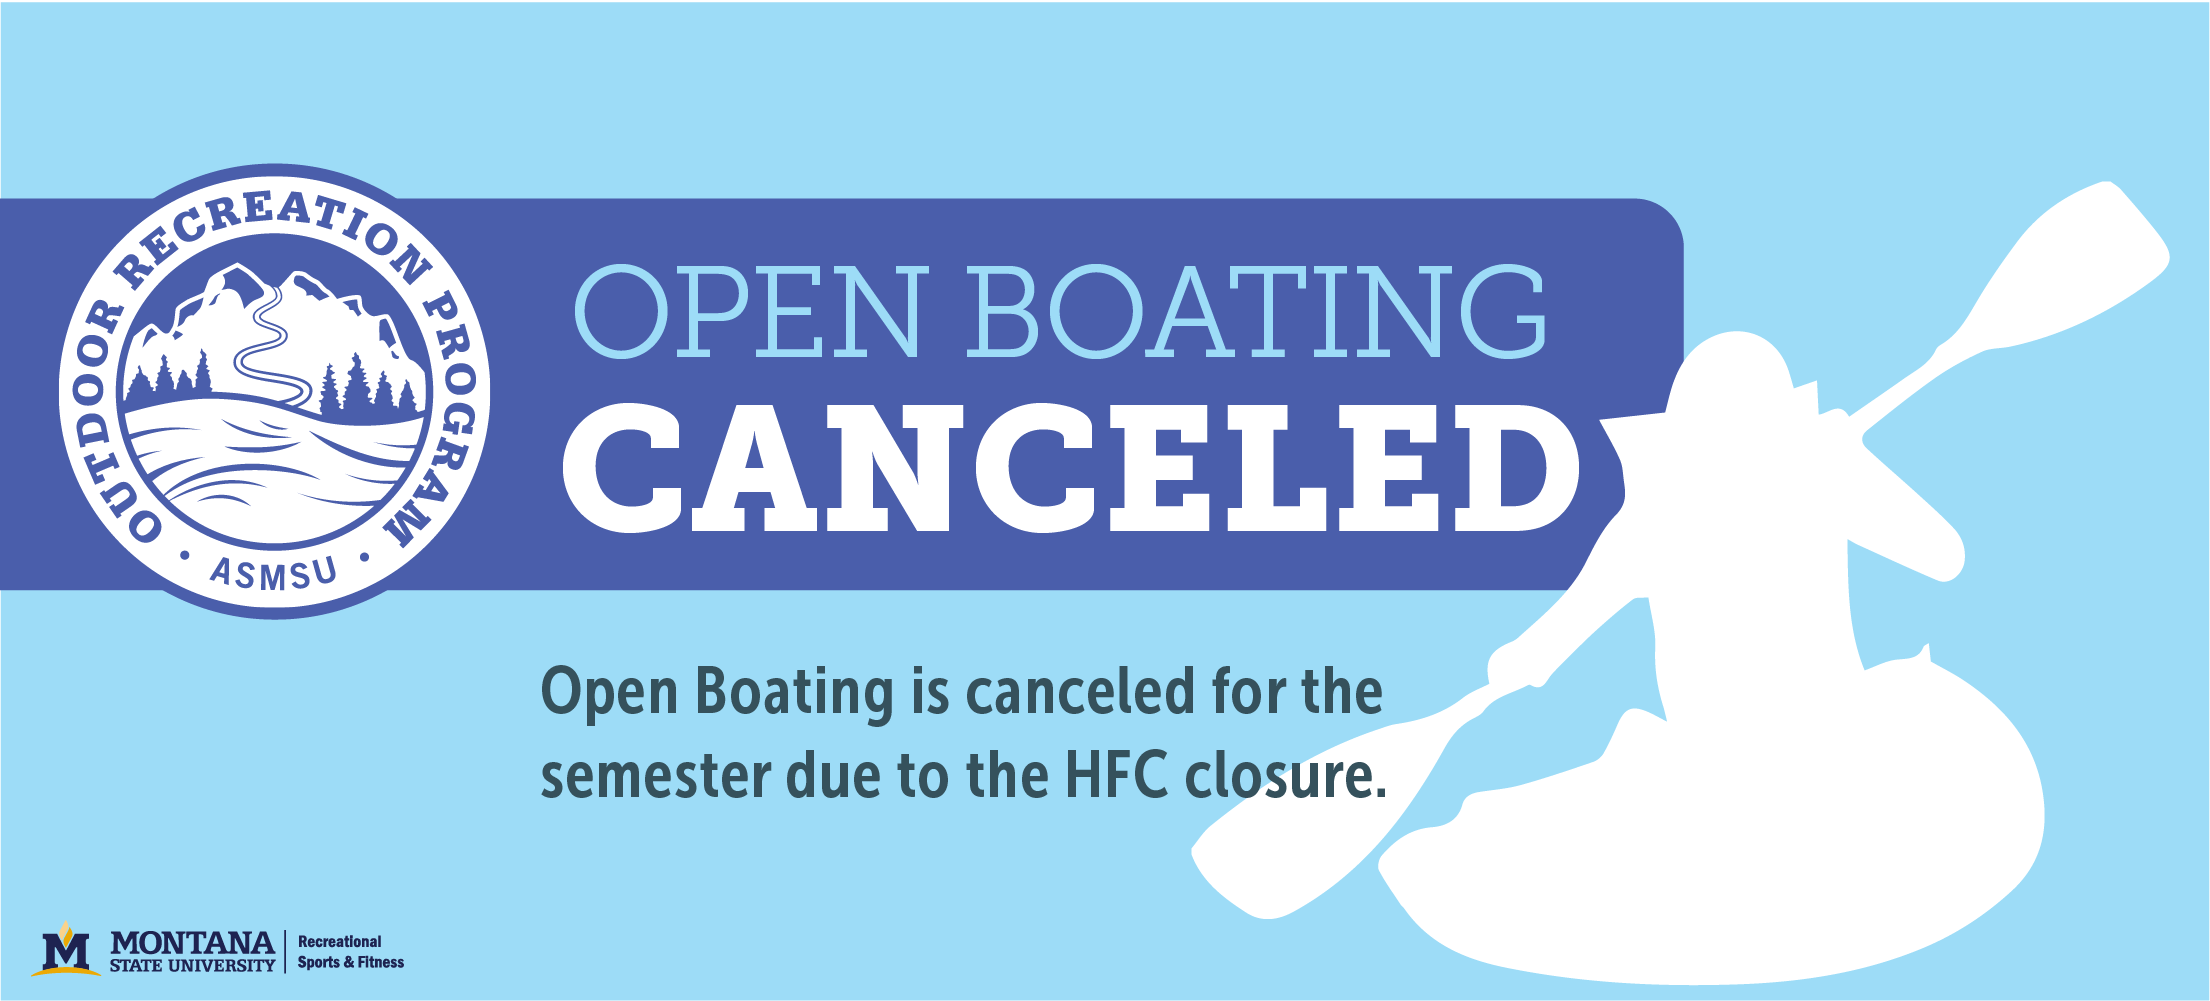 Open Boating Canceled for the remainder of the semester due because of the HFC Pool closure.